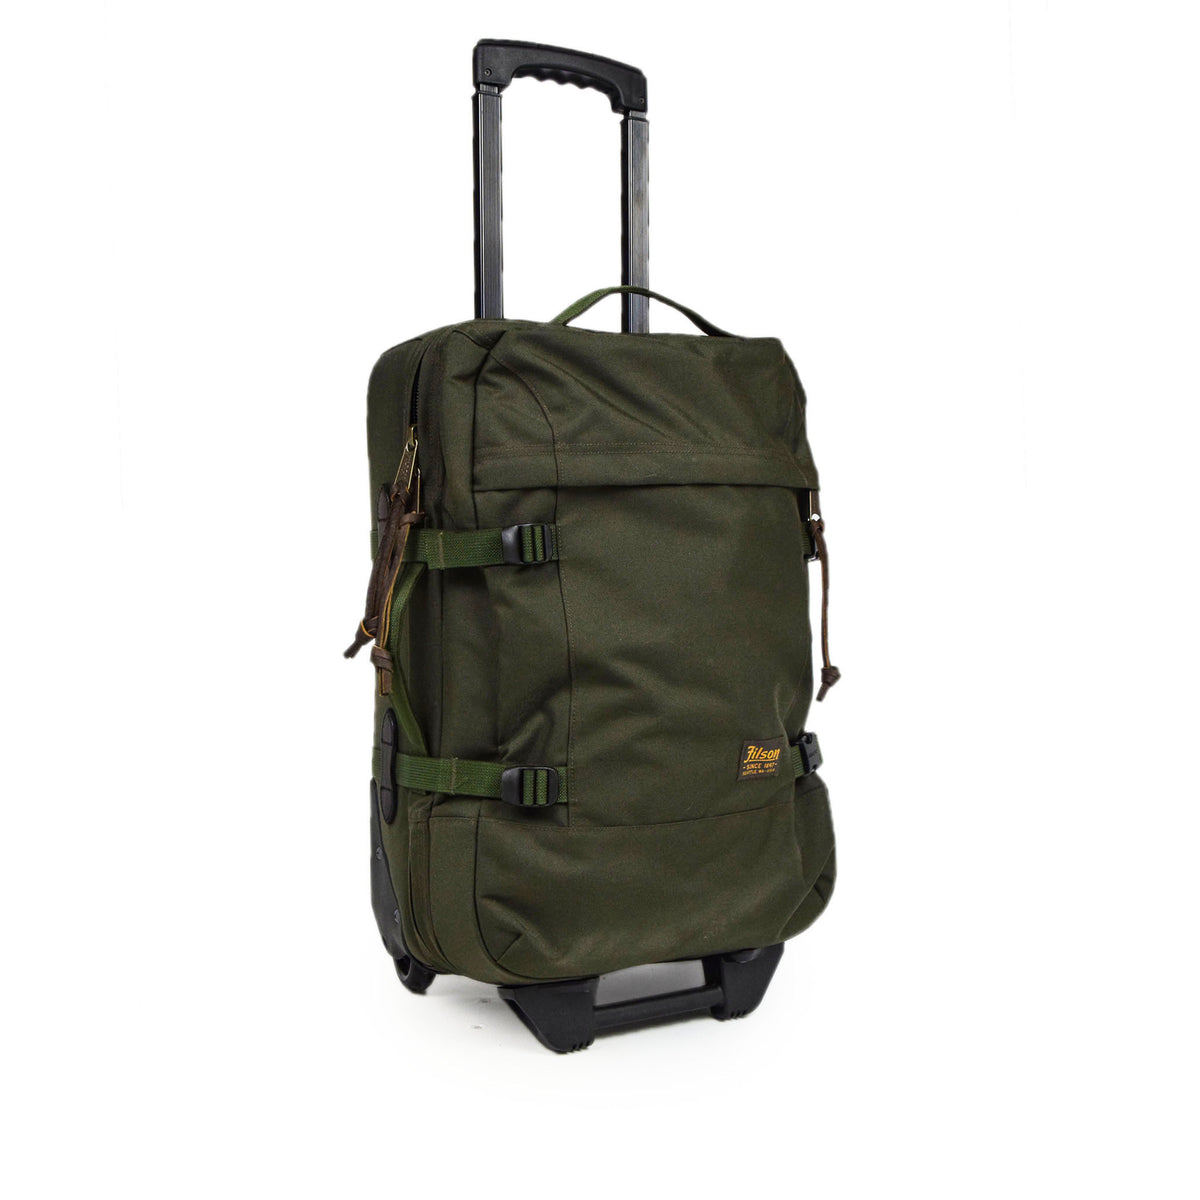 Filson Dryden Cordura Nylon 2-Wheel Carry-on Bag handle